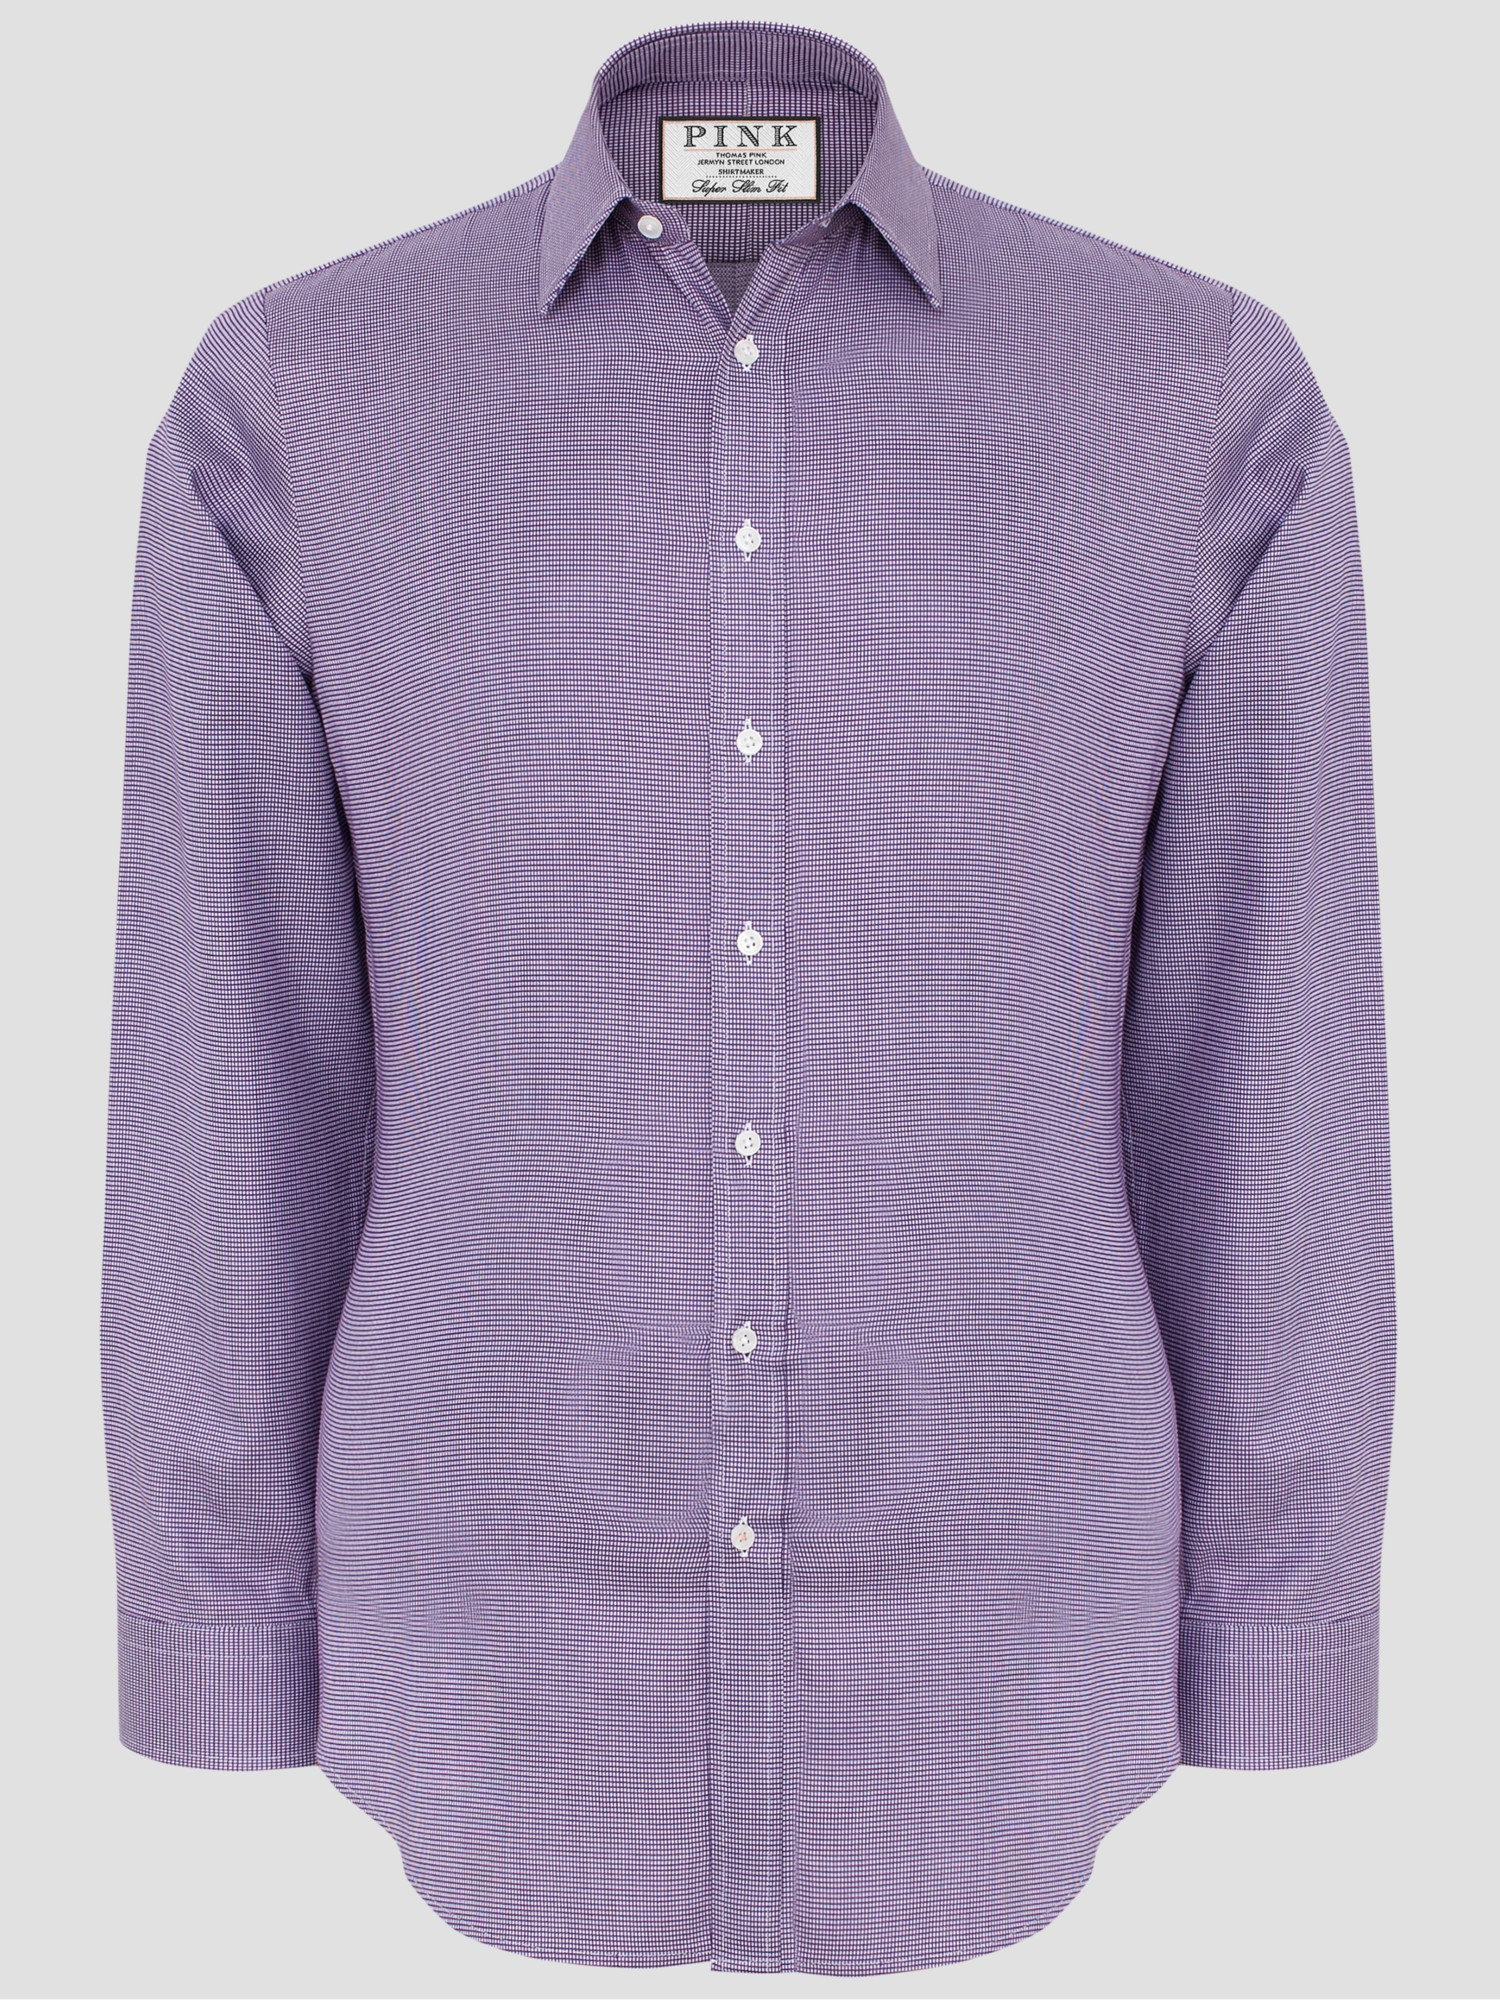 Thomas Pink Hartley Textured Super Slim Fit Shirt In White